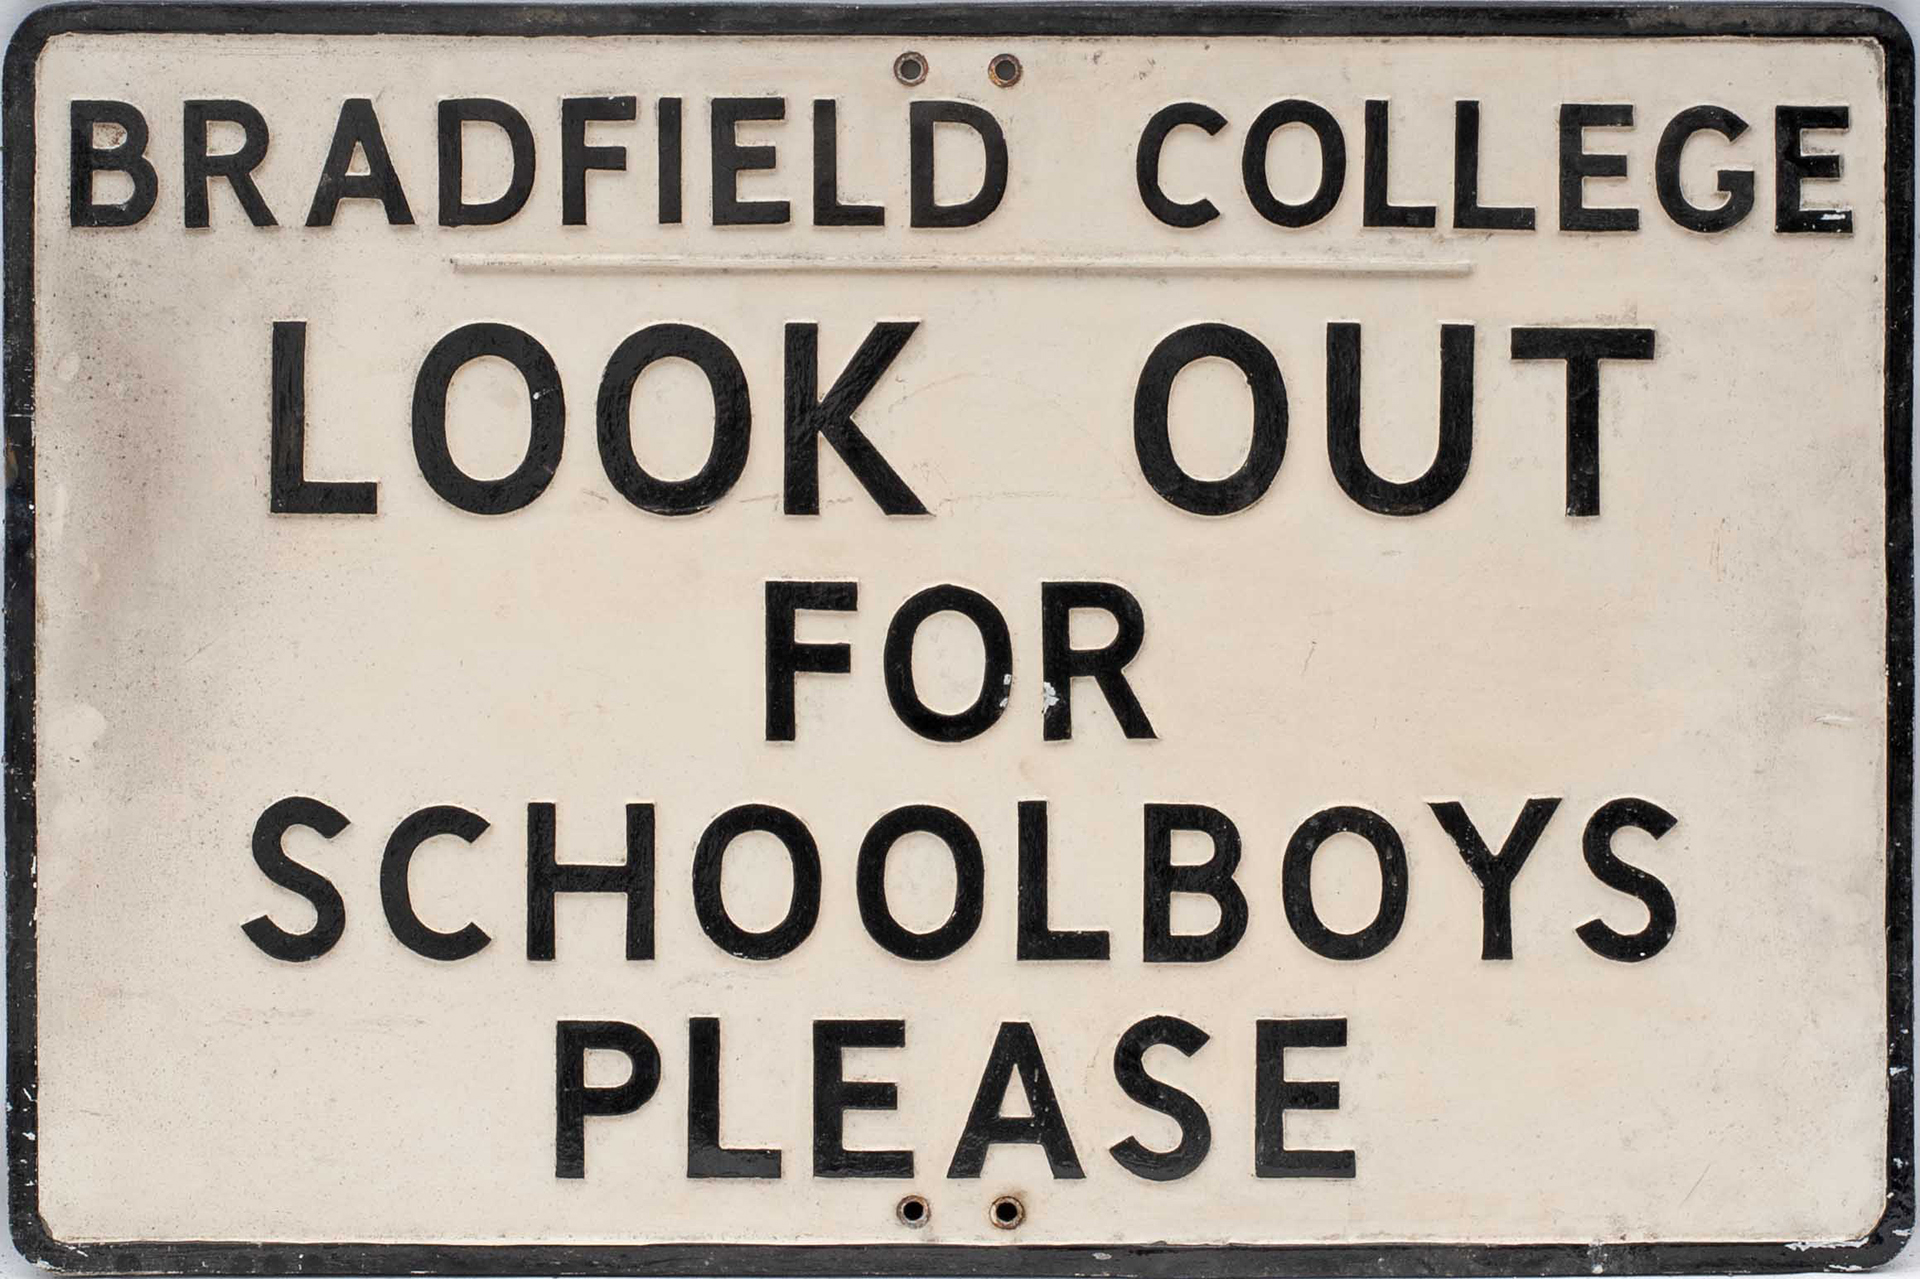 Road sign BRADFIELD COLLEGE LOOK OUT FOR SCHOOL BOYS PLEASE measuring 30in x 20in. Cast aluminium in